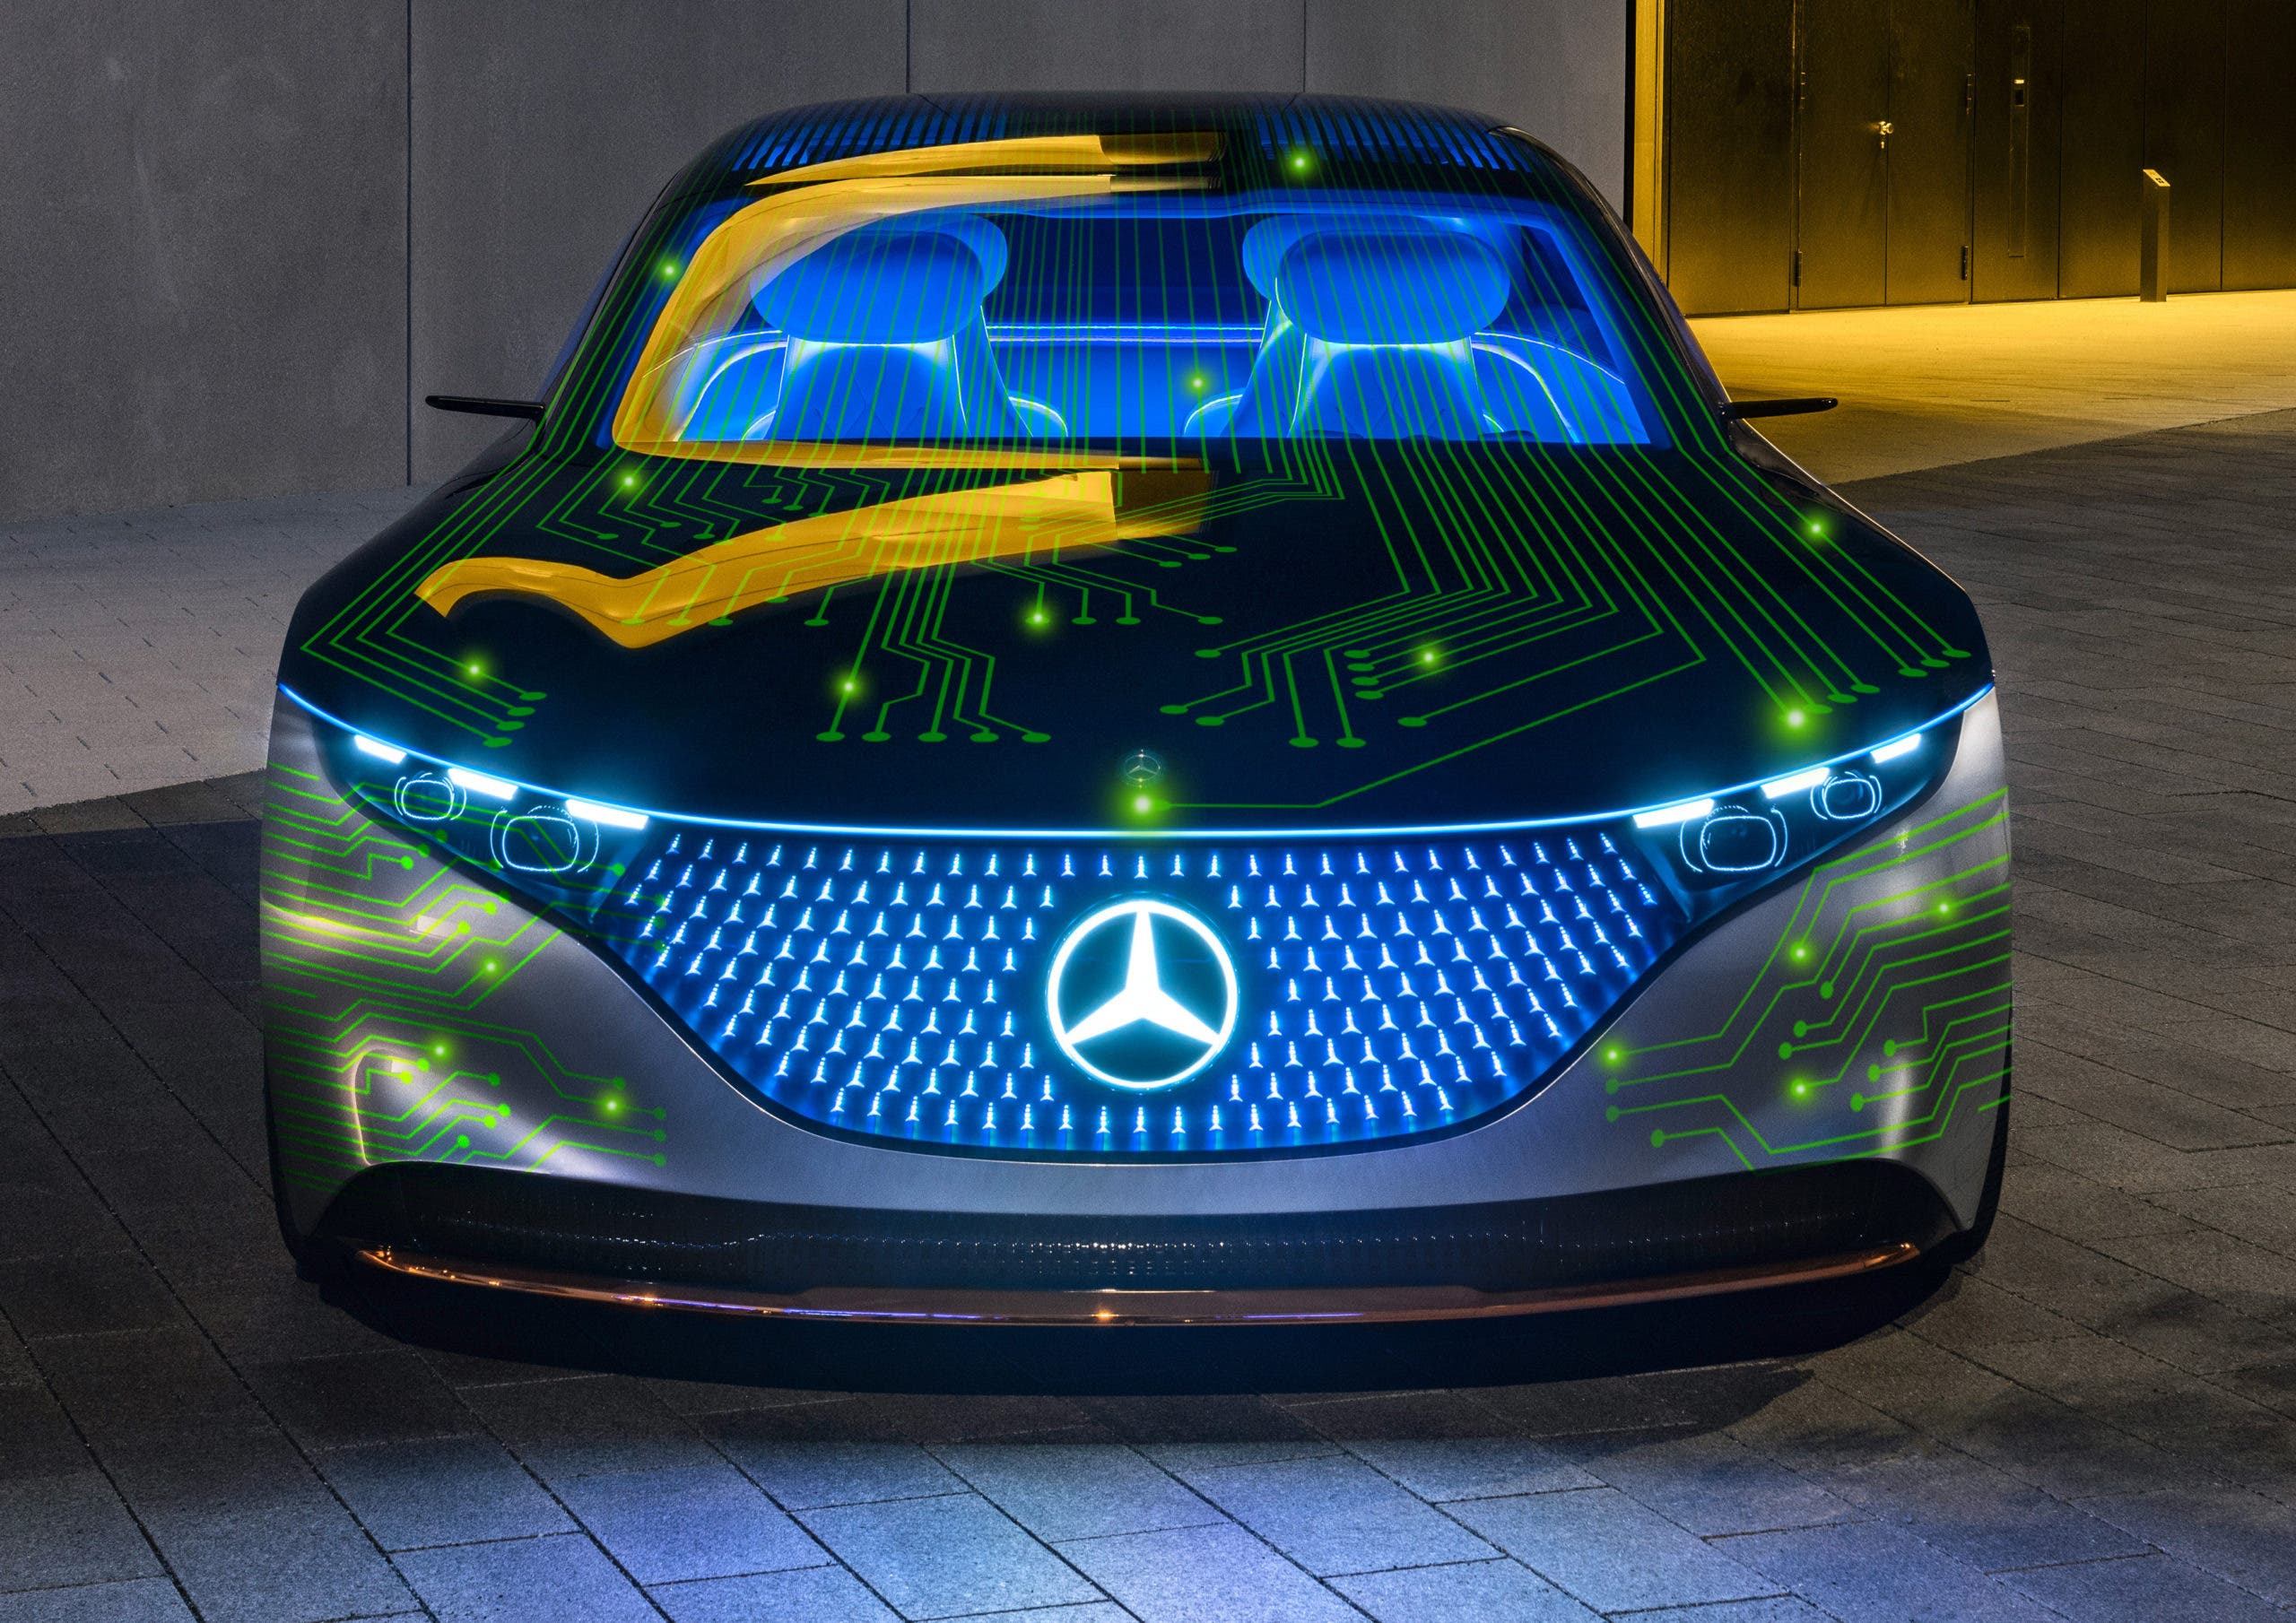 Mercedes-Benz and Nvidia team up on self-driving vehicle tech